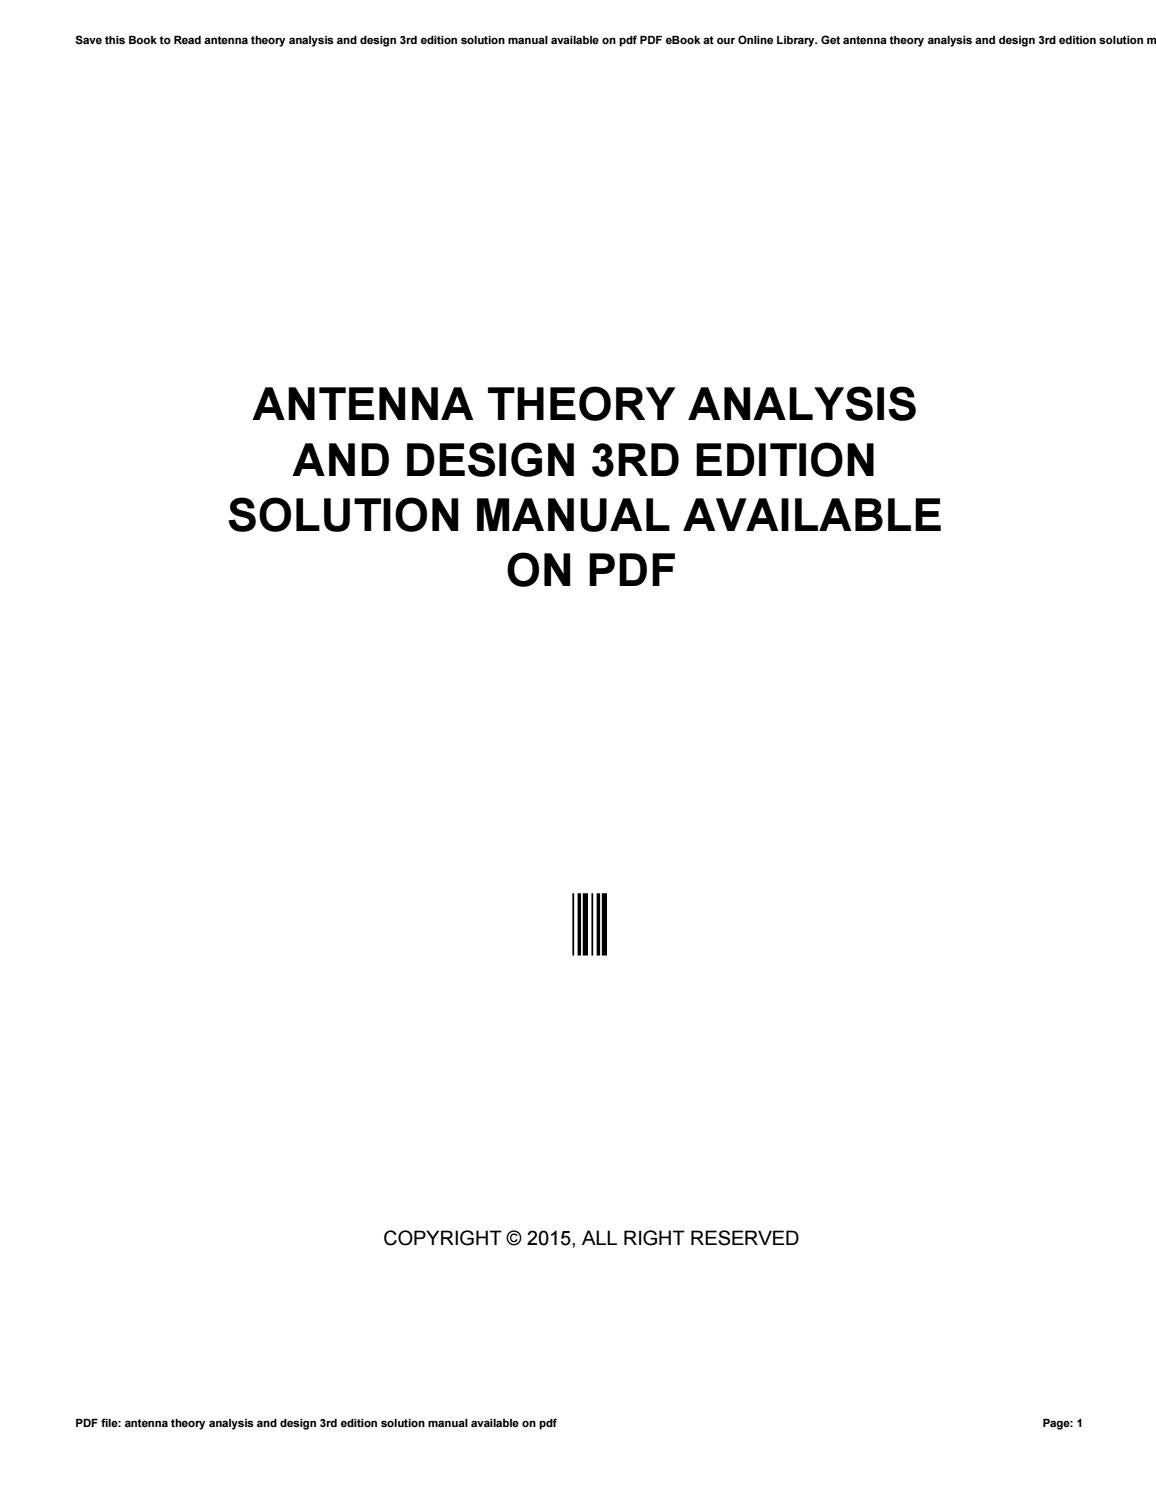 Antenna theory analysis and design 3rd edition solution